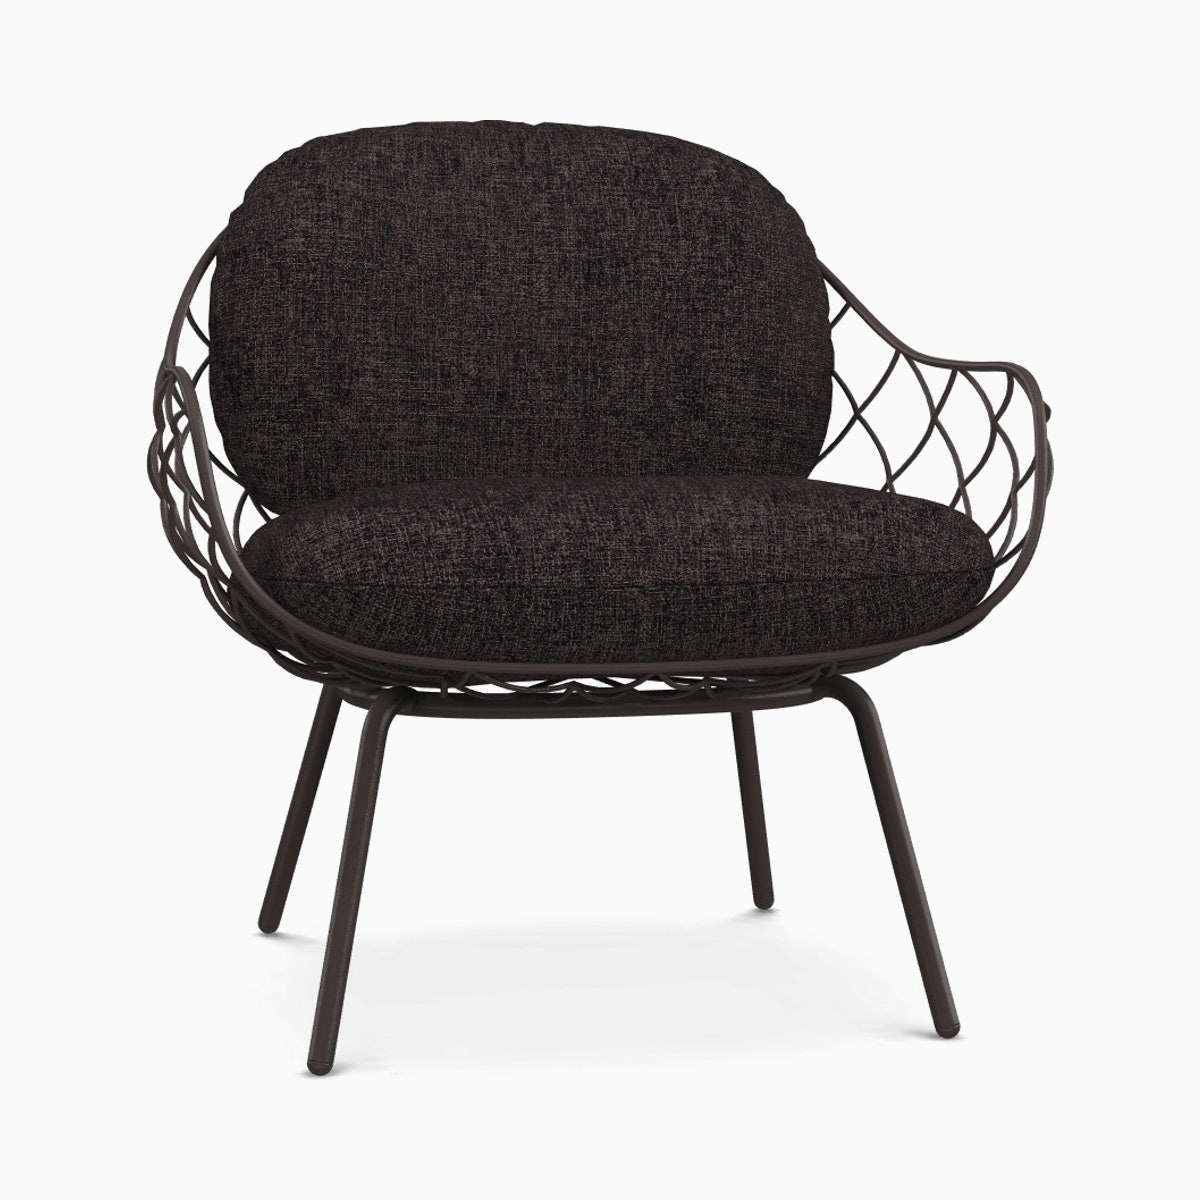 Pina Outdoor Low Chair